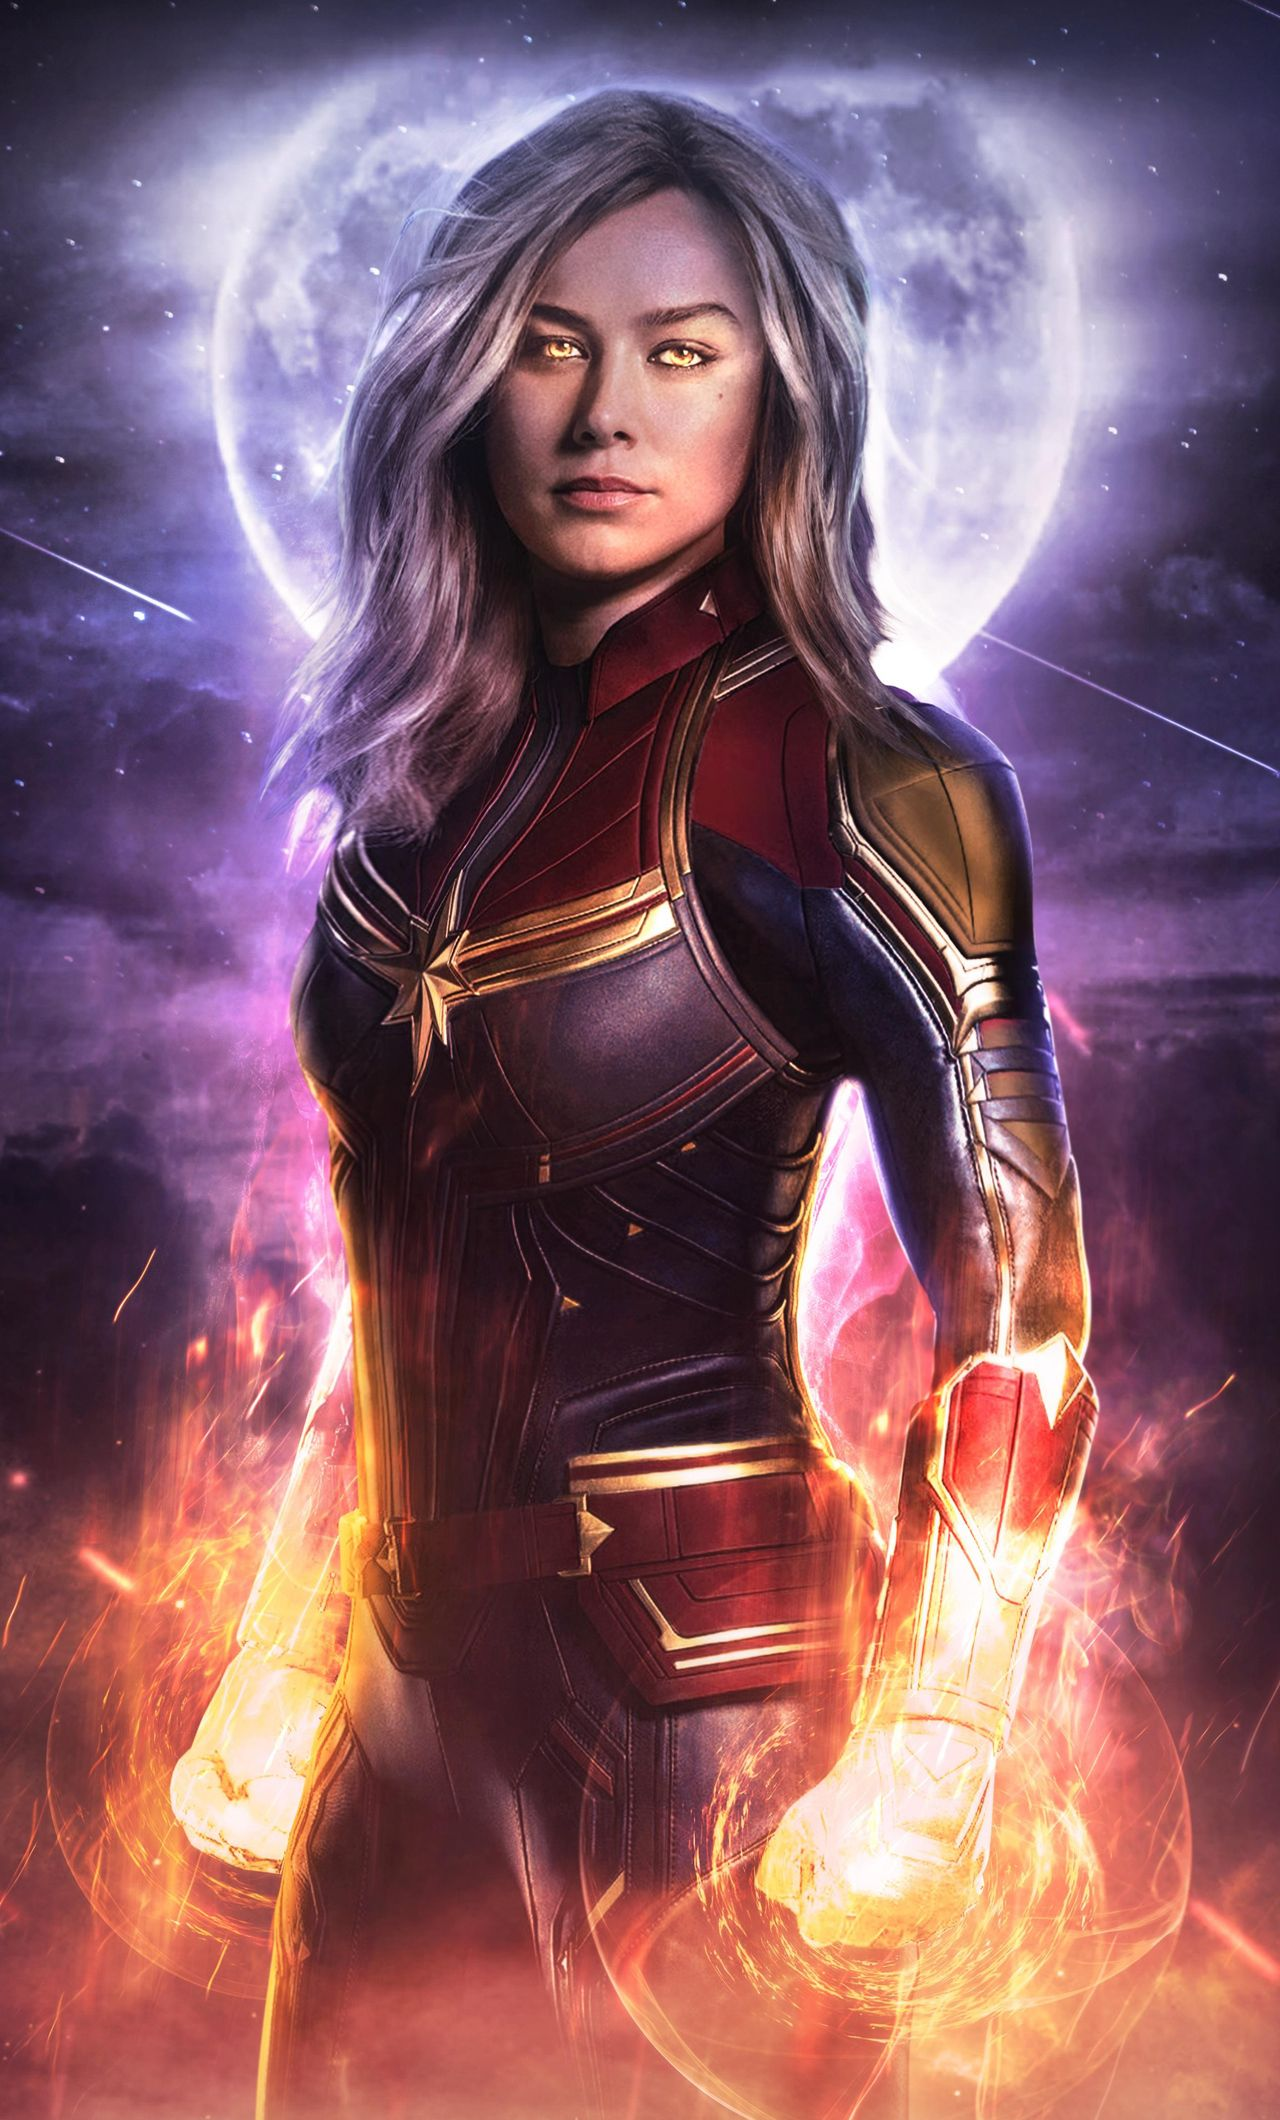 1125x2436 Captain Marvel Movie 2019 5k Iphone Xs Iphone 10 Iphone X Hd 4k Wallpapers Images Backgrounds Phot Marvel Movie Posters Marvel Marvel Wallpaper Hd